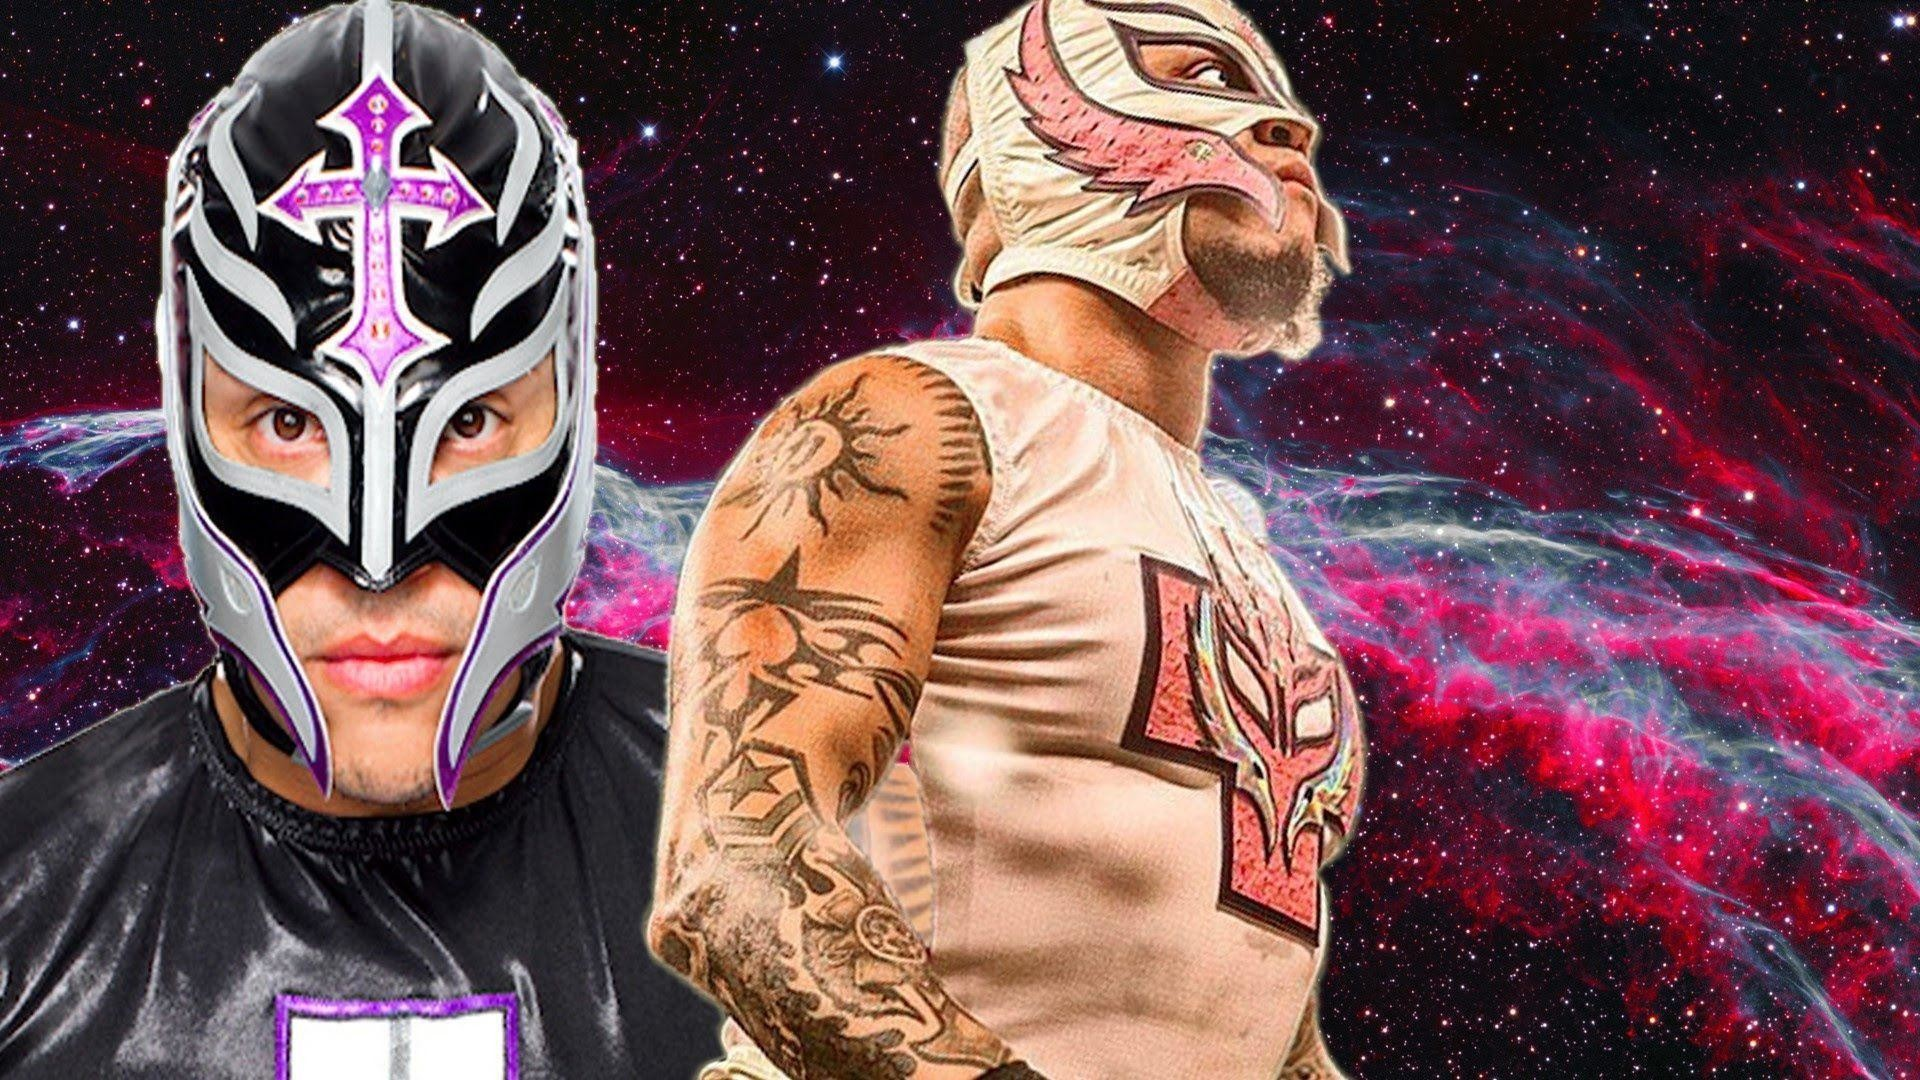 Rey Mysterio Backgrounds 65 Pictures